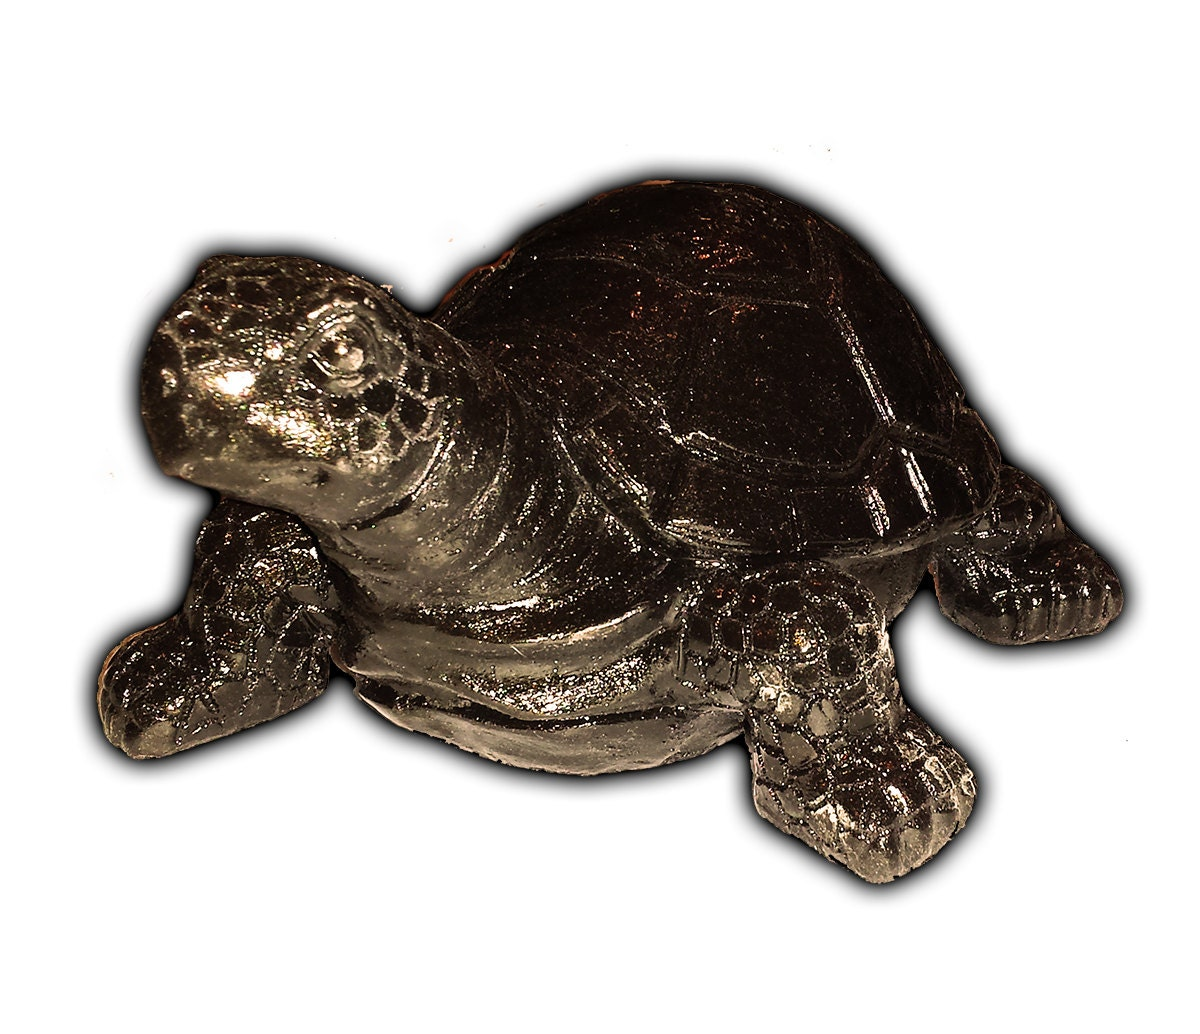 Turtle Home Decor Outdoor Decor Statue Garden Decor Home